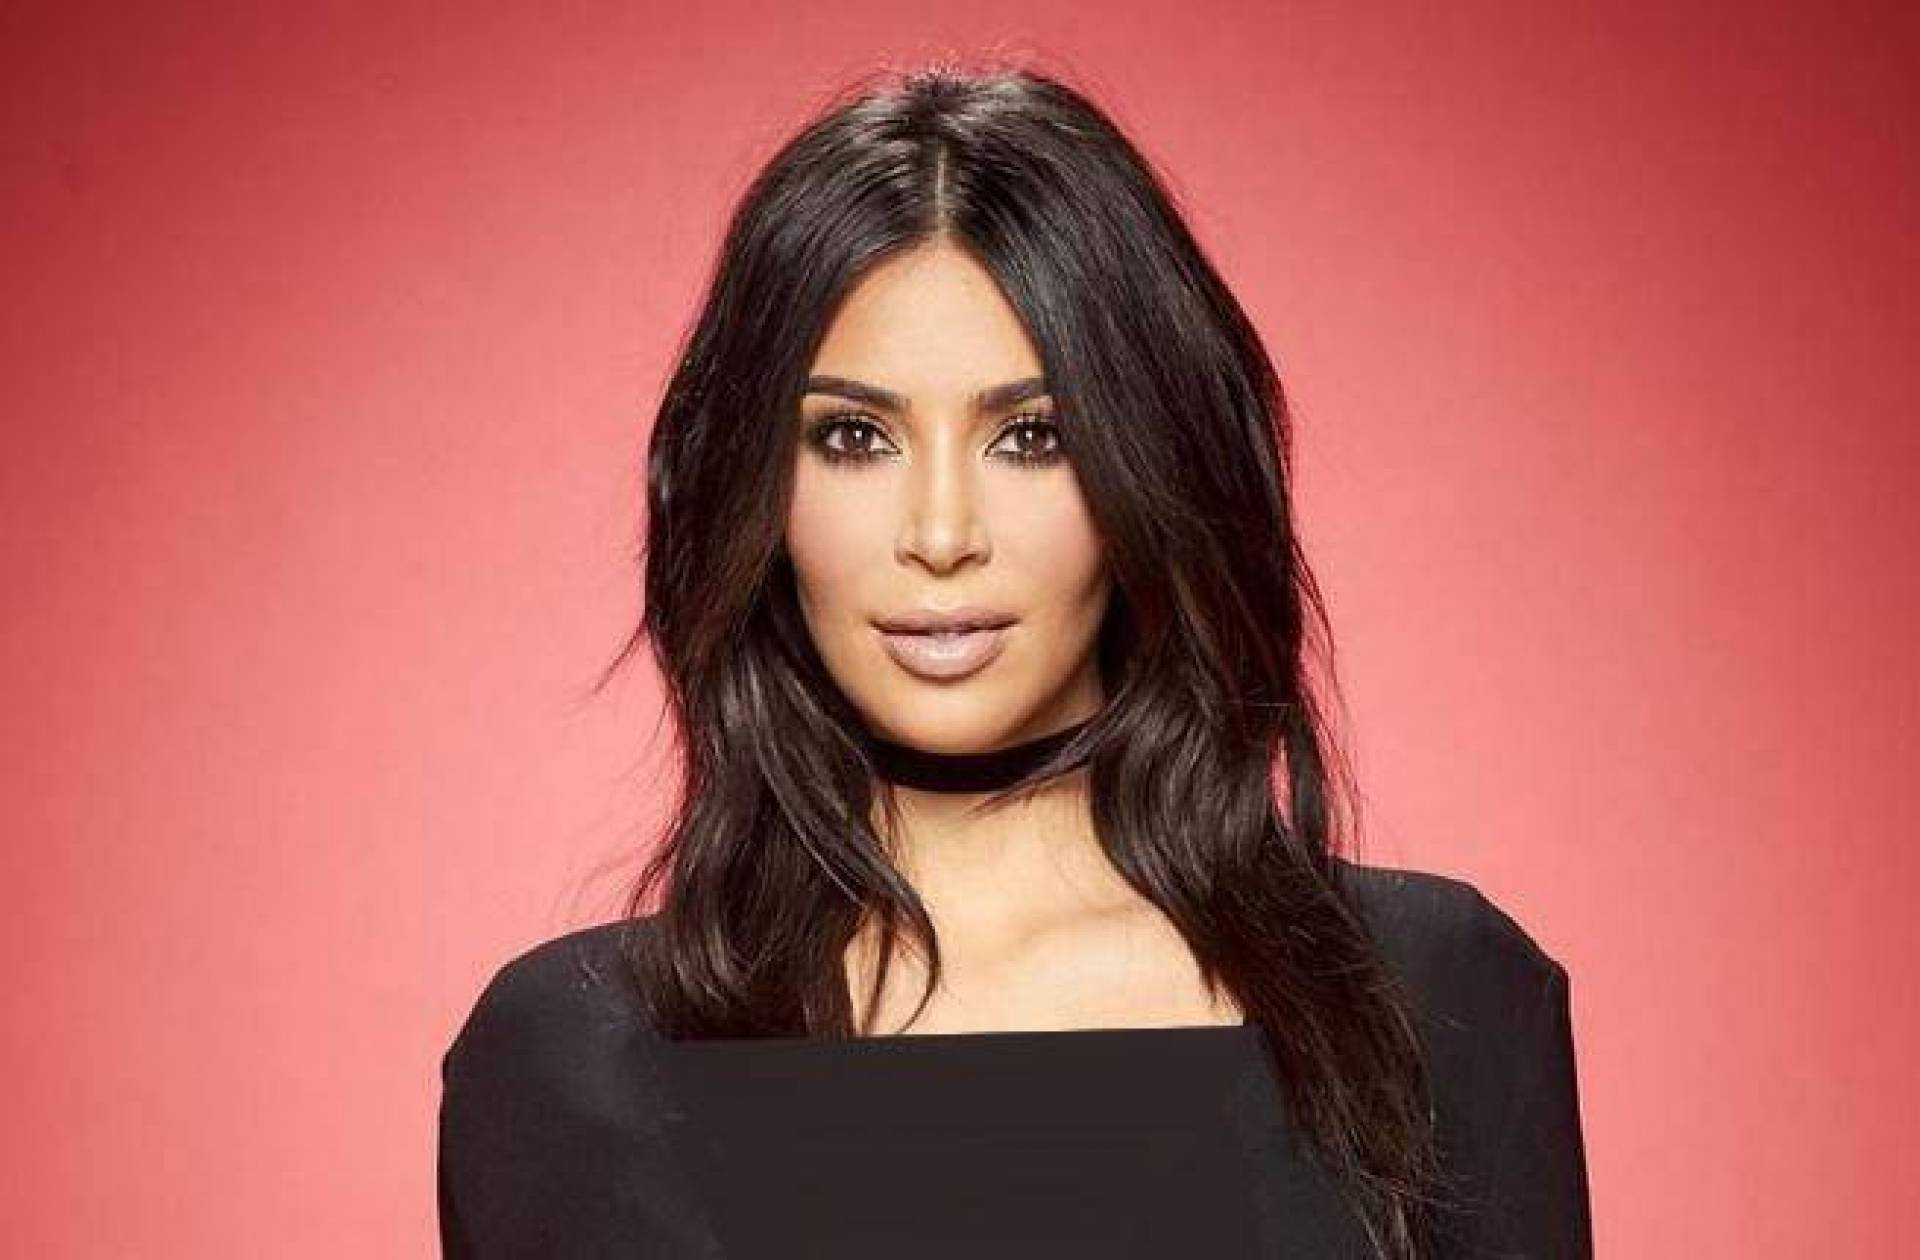 Kim Kardashian In 5 Fat Views In Strong Colors And Neon Discover